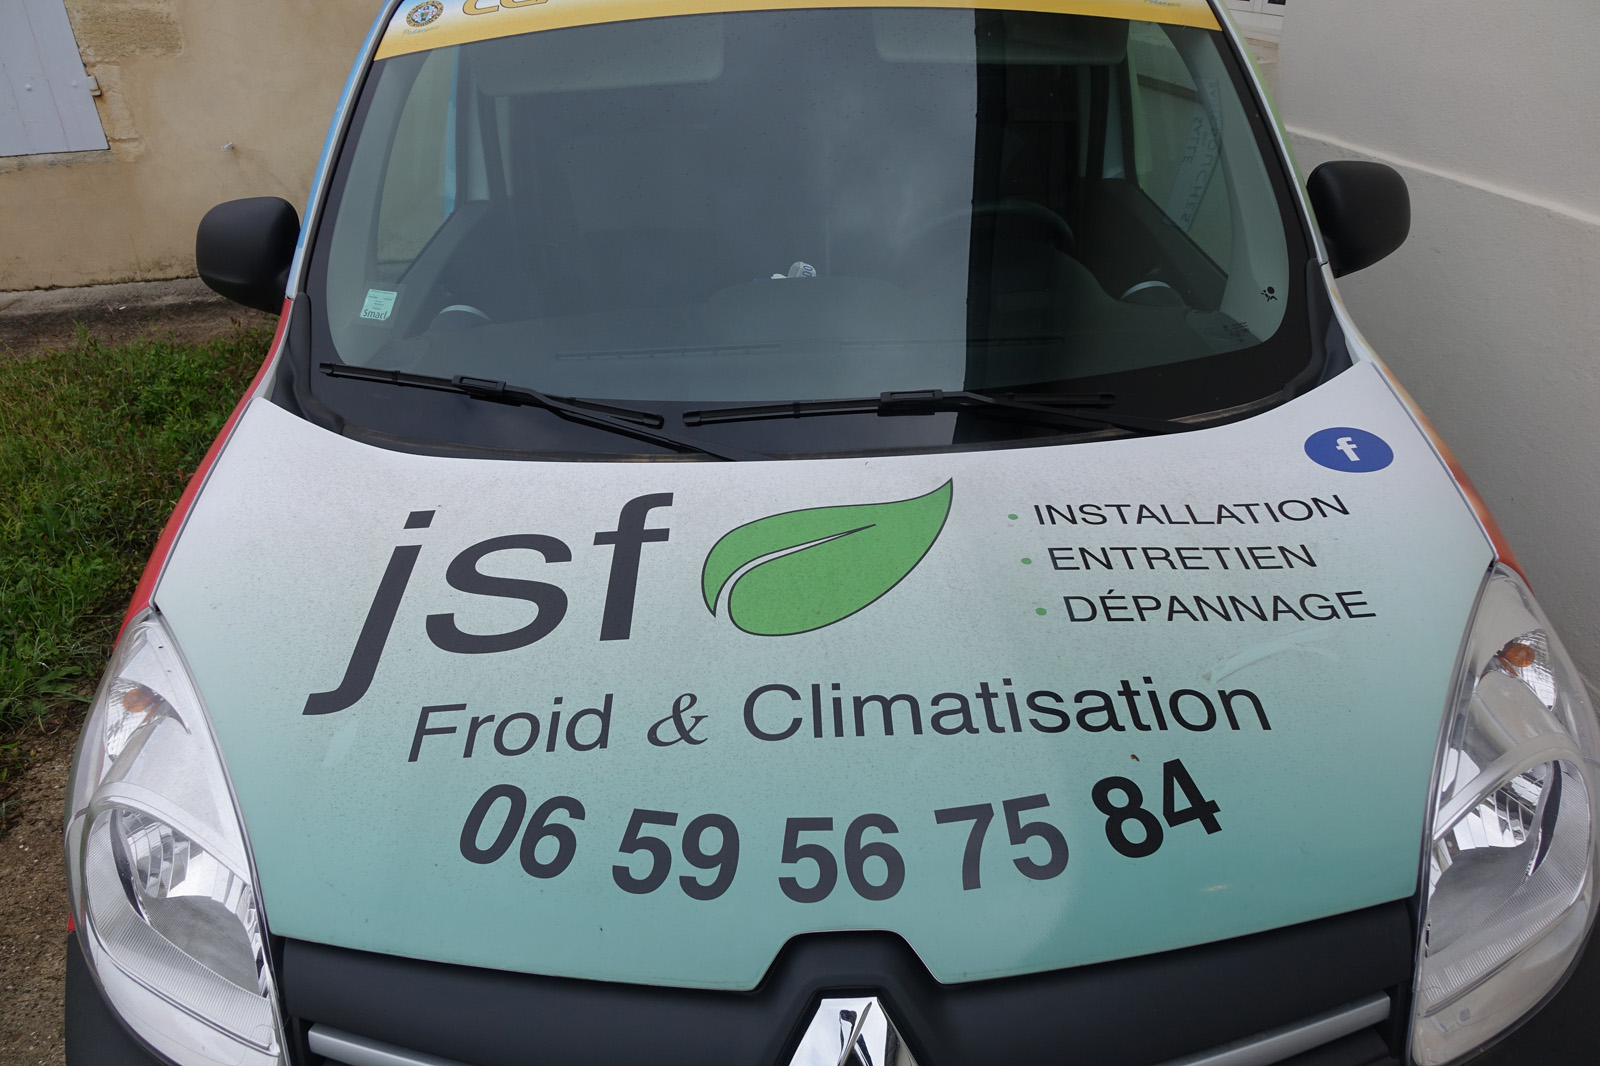 JSF Froid et Climatisation